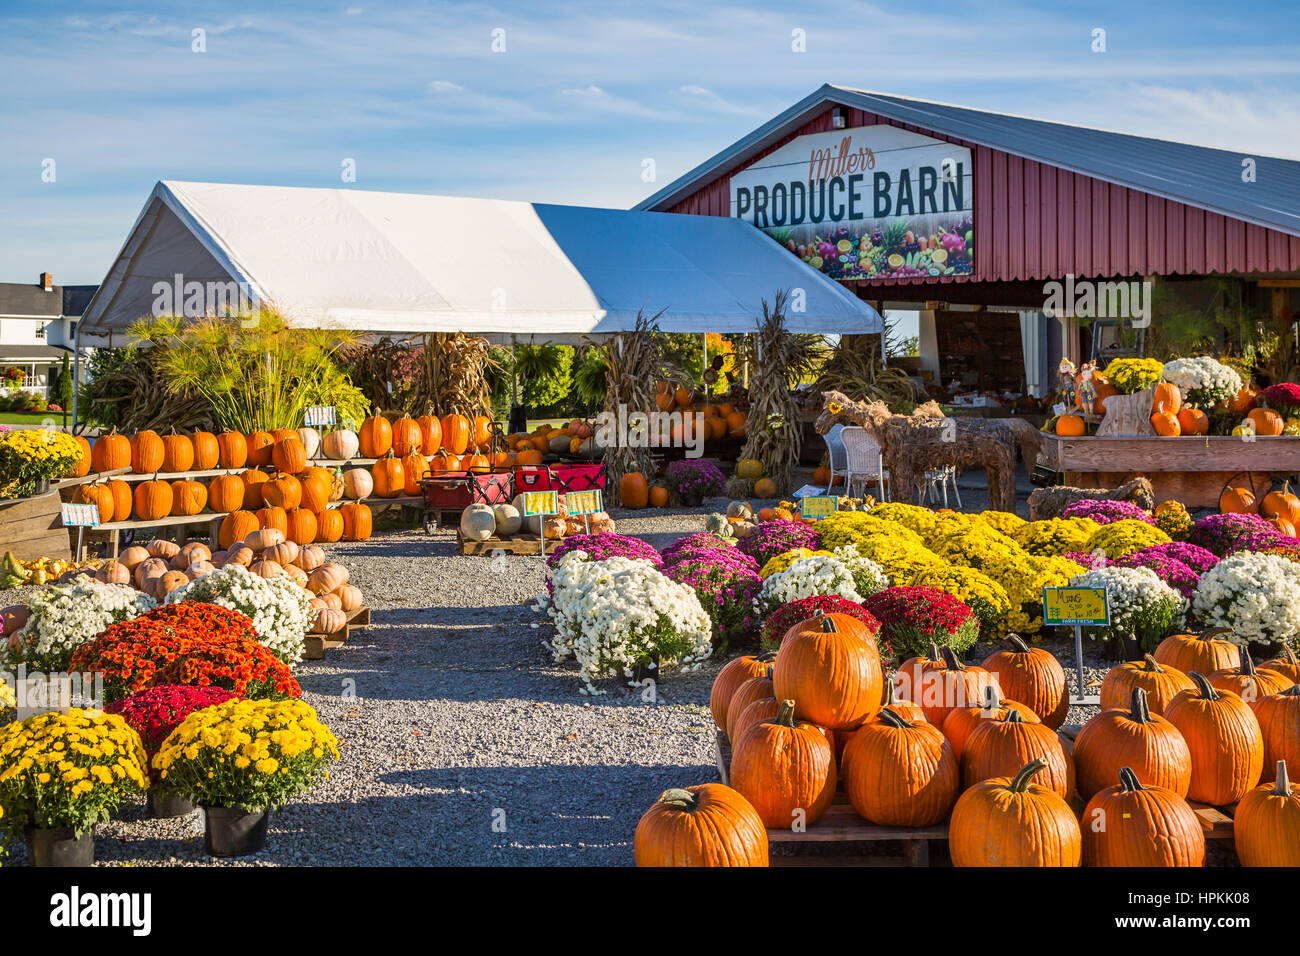 Pumpkins and fall market at Miller's Produce Barn in rural, Ohio, USA. - Stock Image